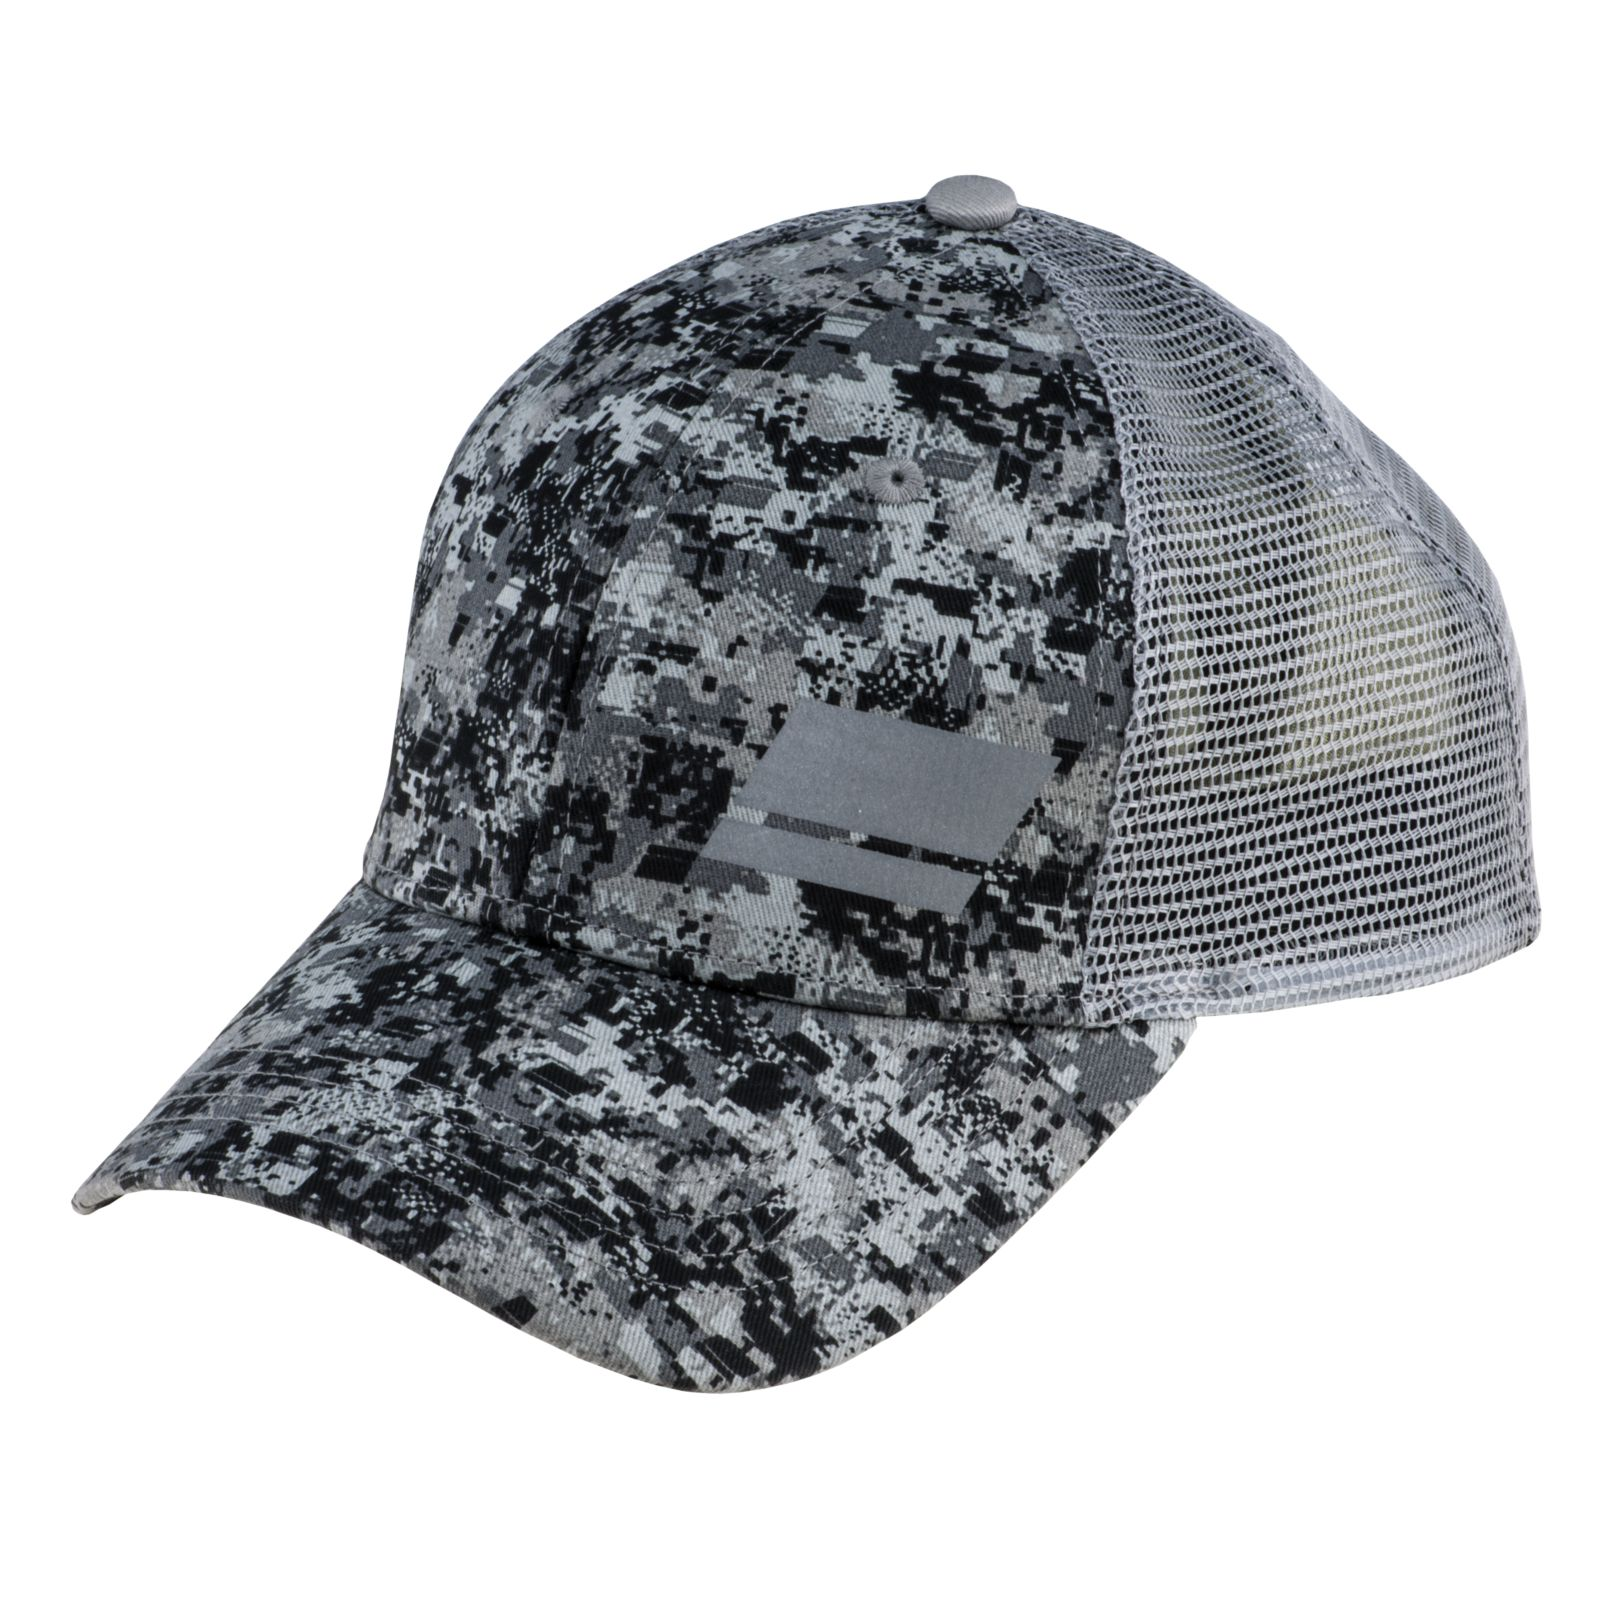 Abu Icon Camo Trucker Hat Alt